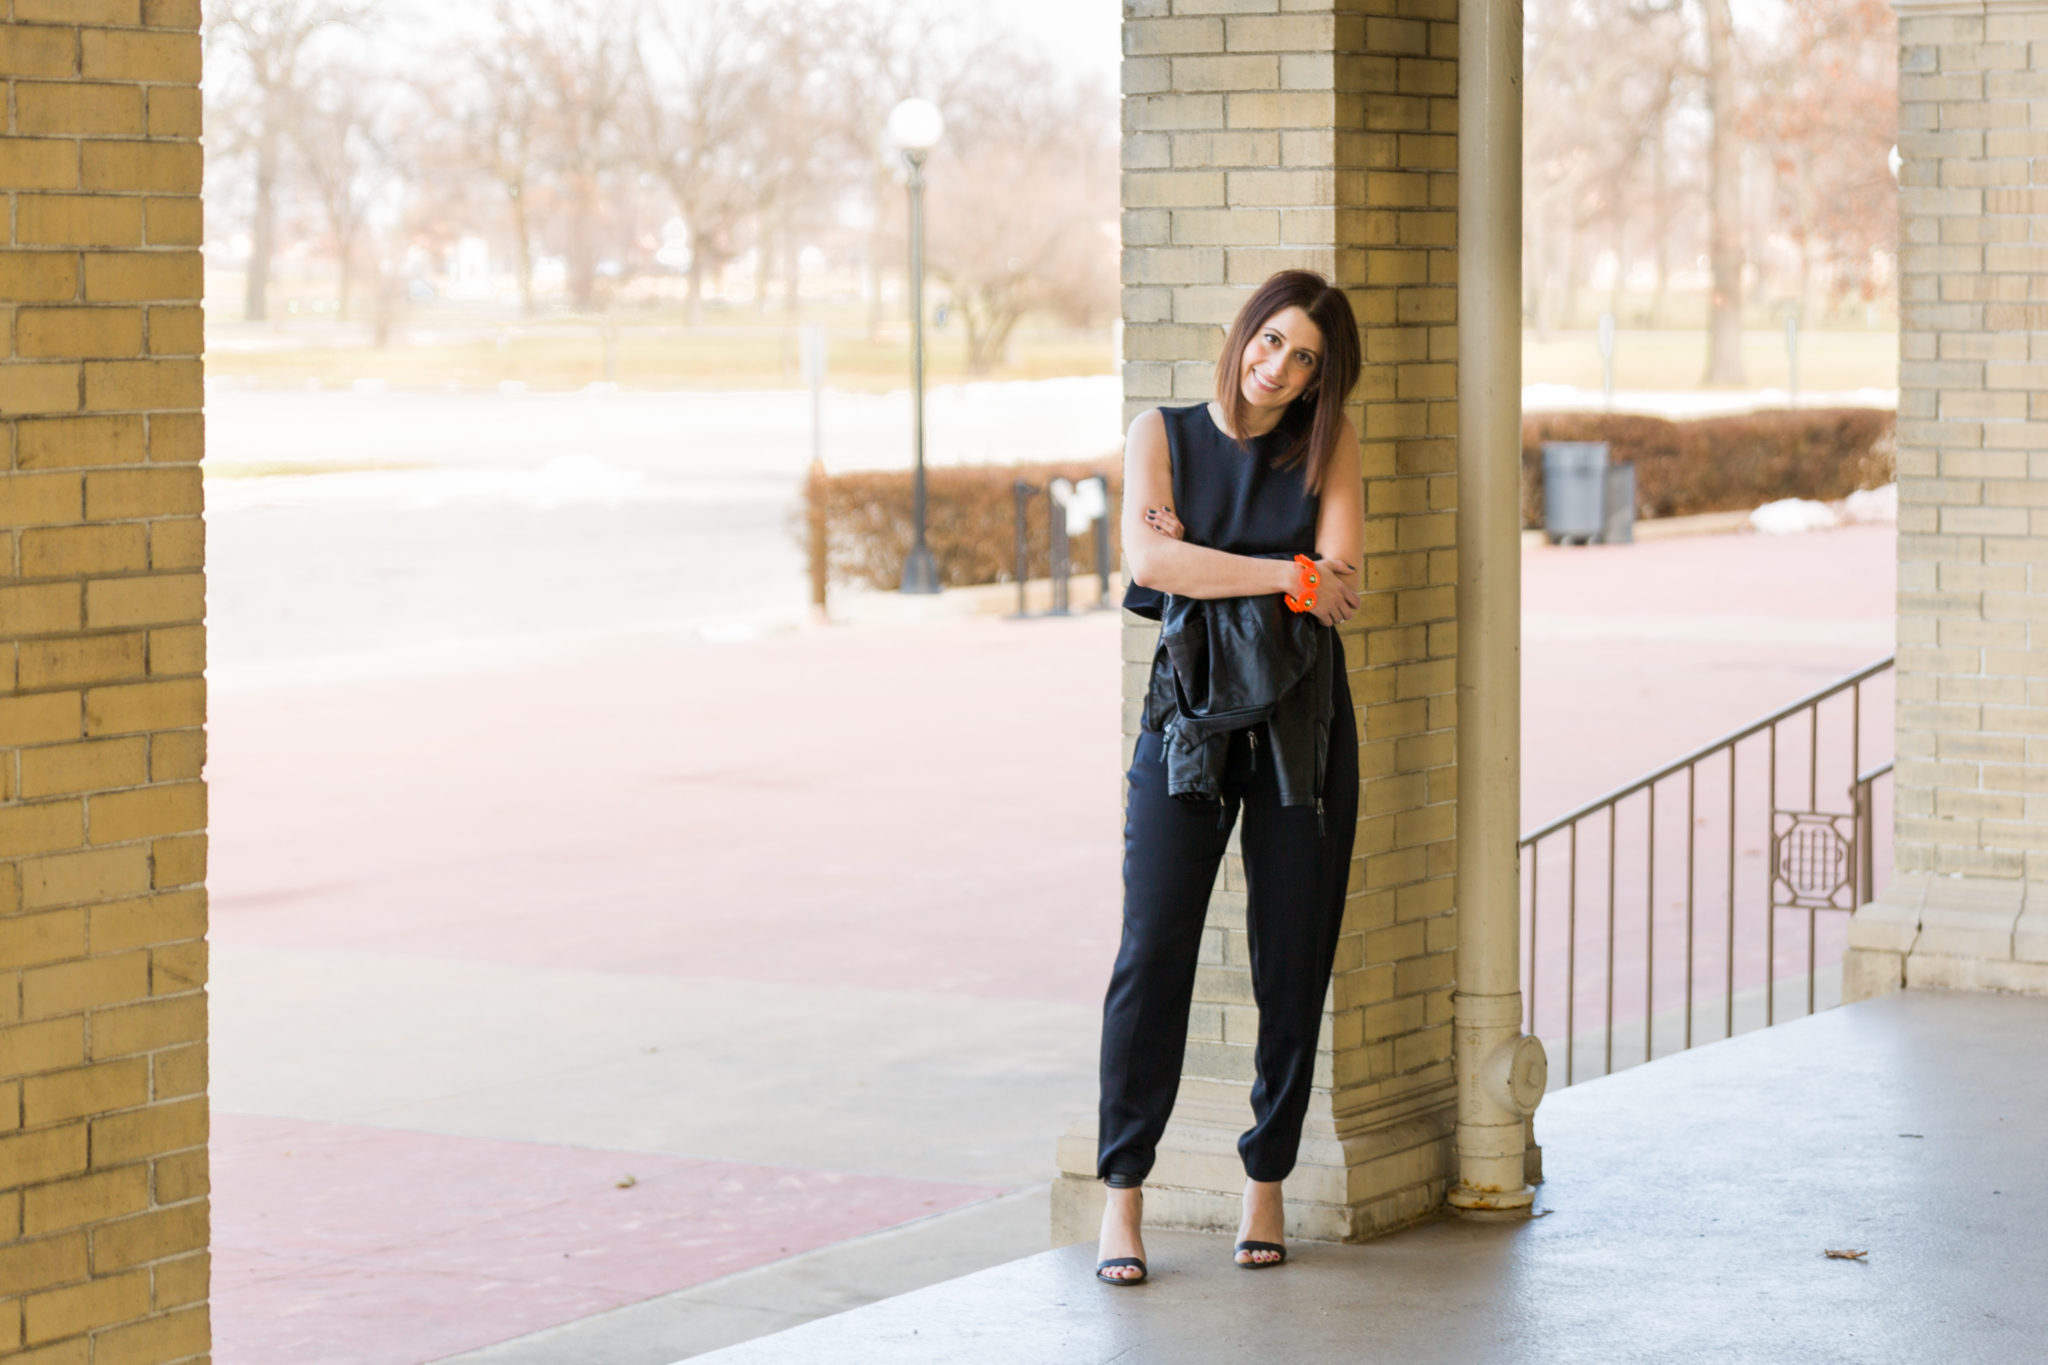 h&m jumpsuit | how to style a jumpsuit in your 30's | my resolution to wear more jumpsuits in 2016 on allweareblog.com | fashion new years resolutions